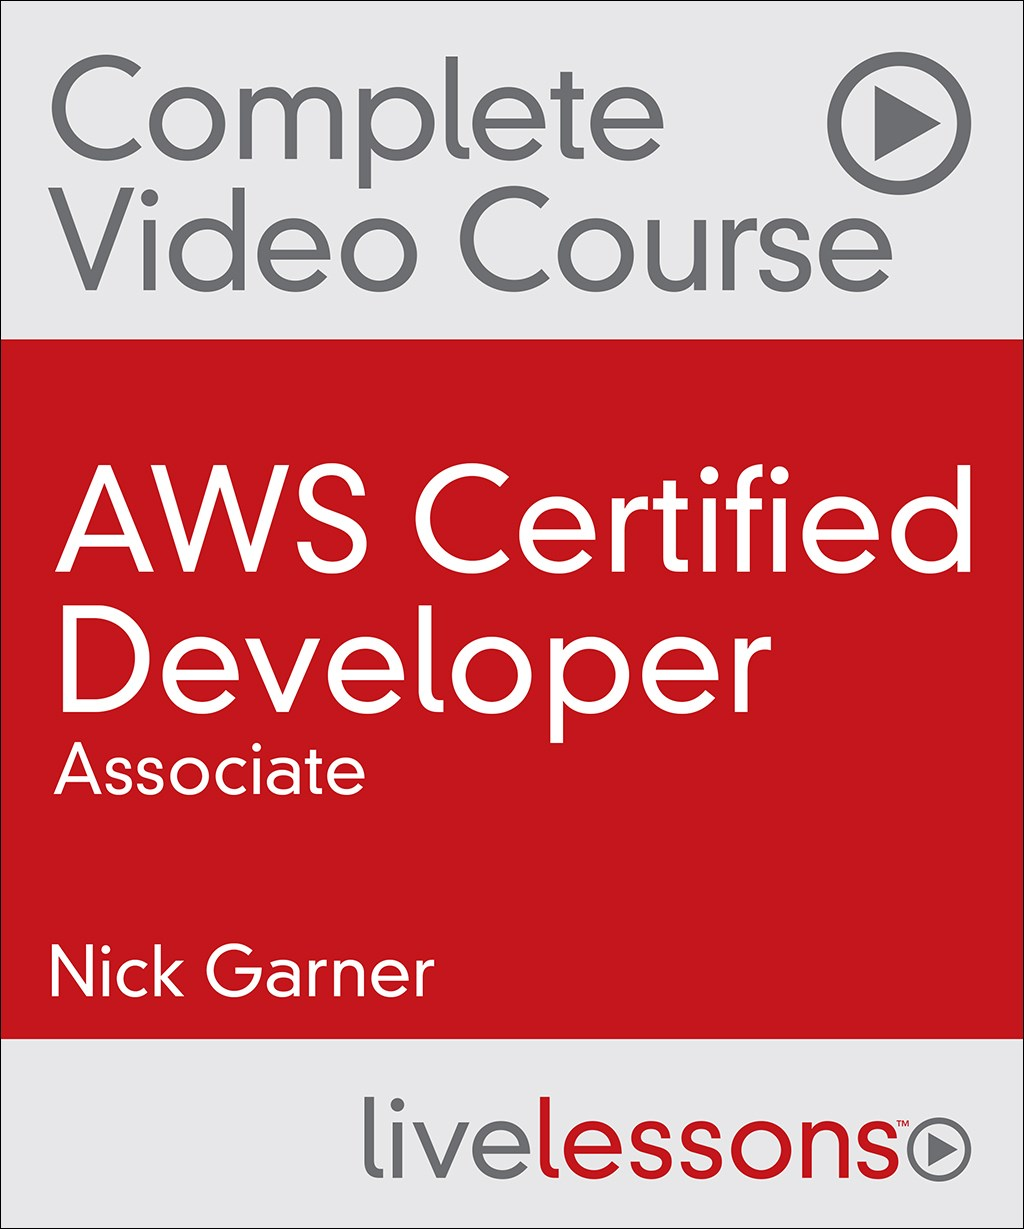 AWS Certified Developer (Associate) Complete Video Course